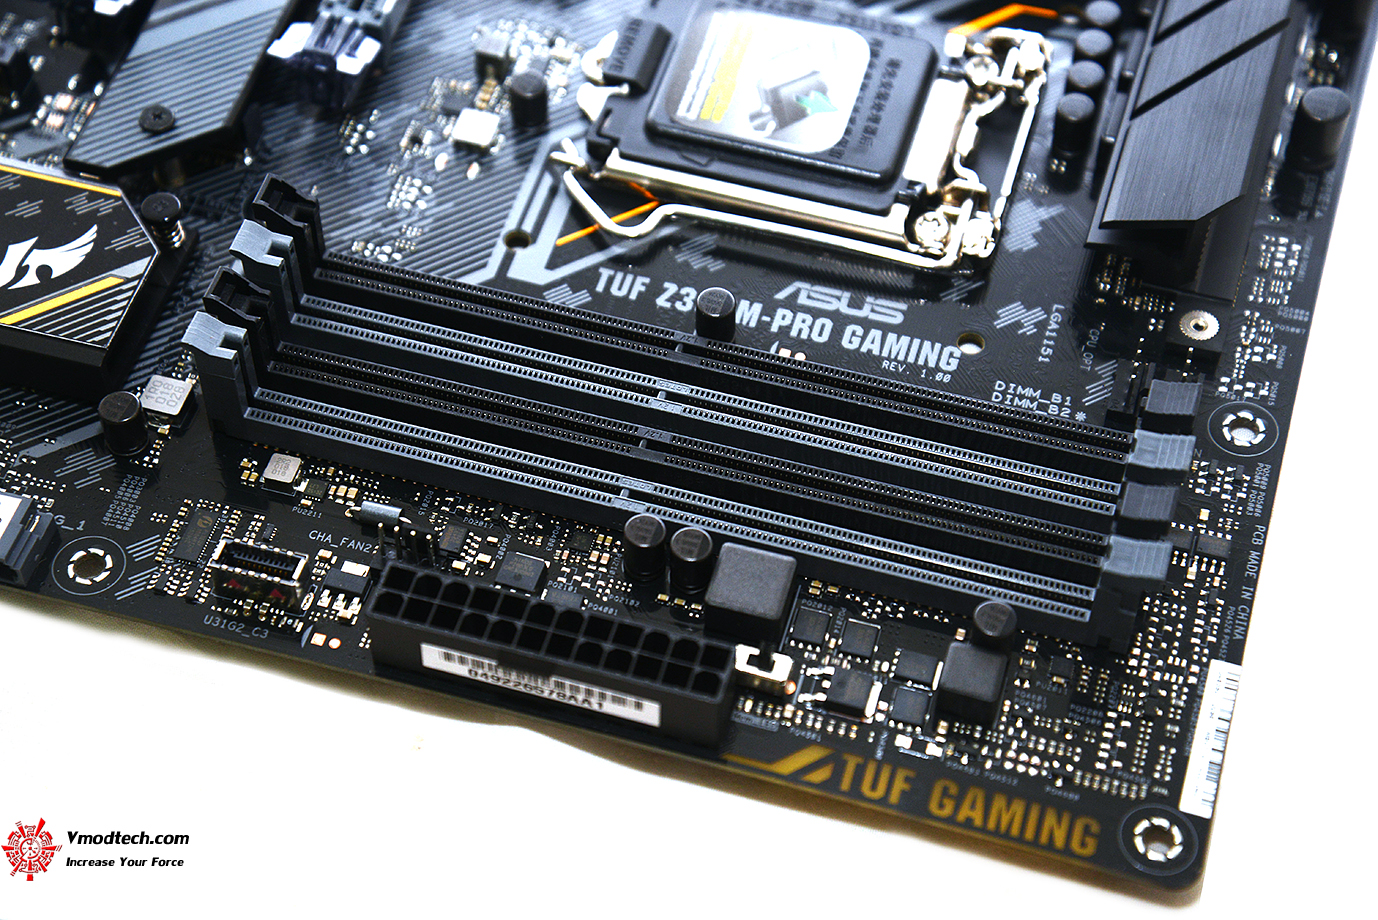 dsc 2303 ASUS TUF Z390M PRO GAMING REVIEW